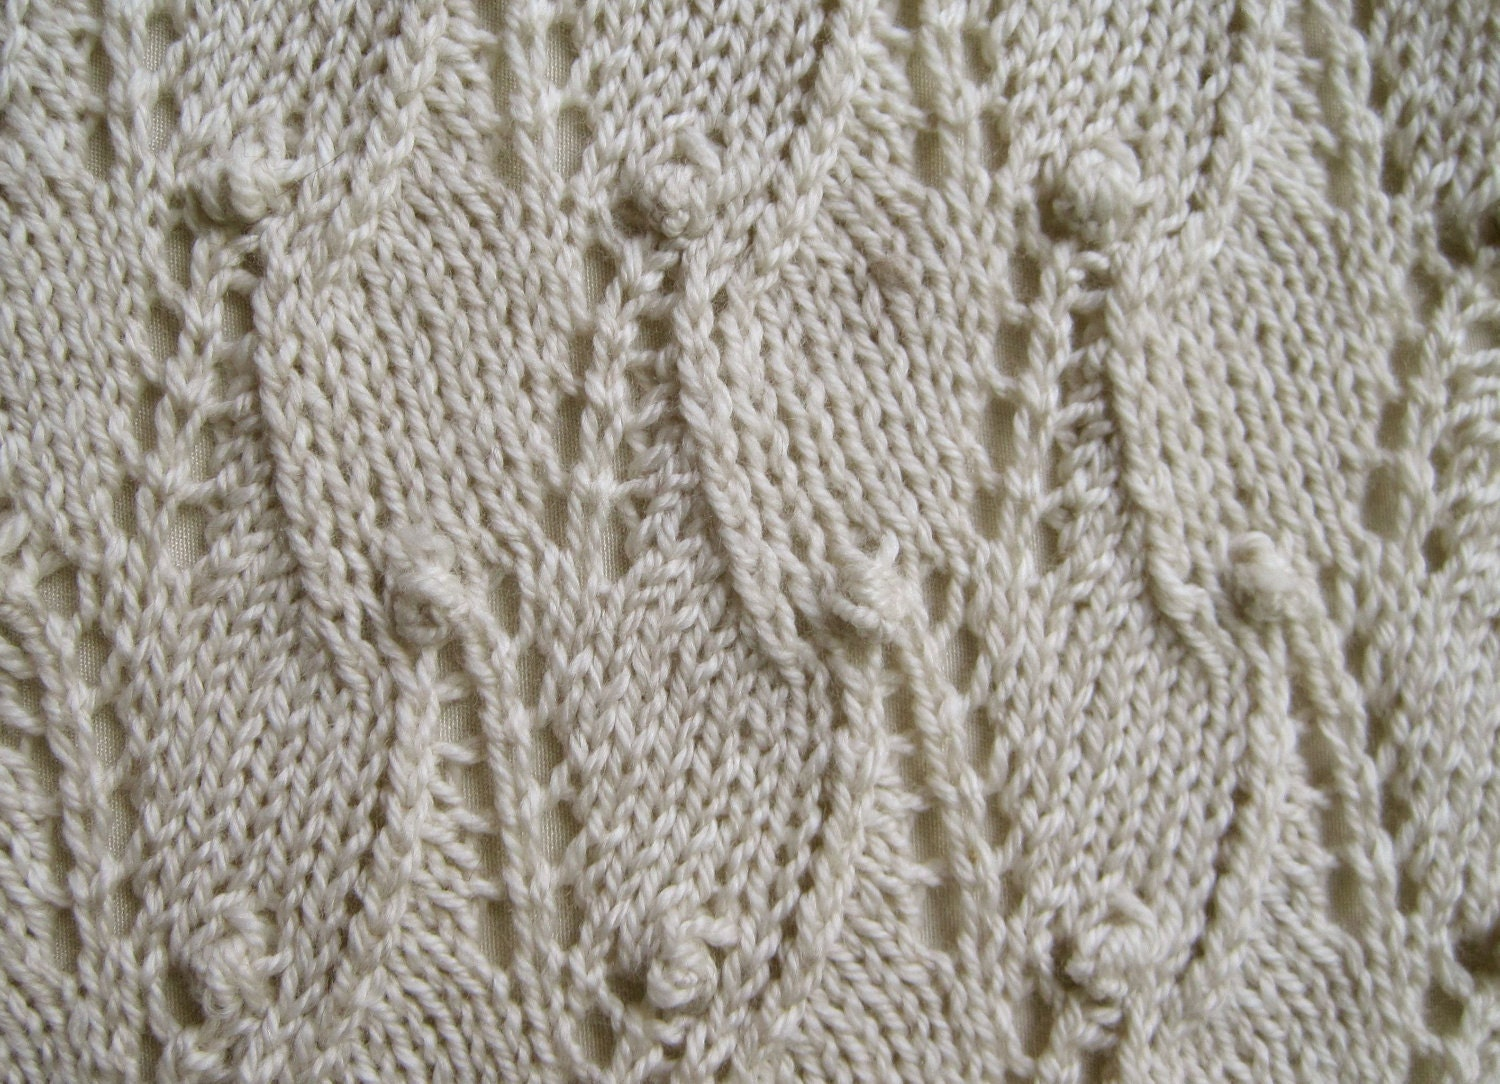 Knitting Pattern For Sampler Scarf : Knit Scarf Pattern: Lace Sampler Scarf / 1